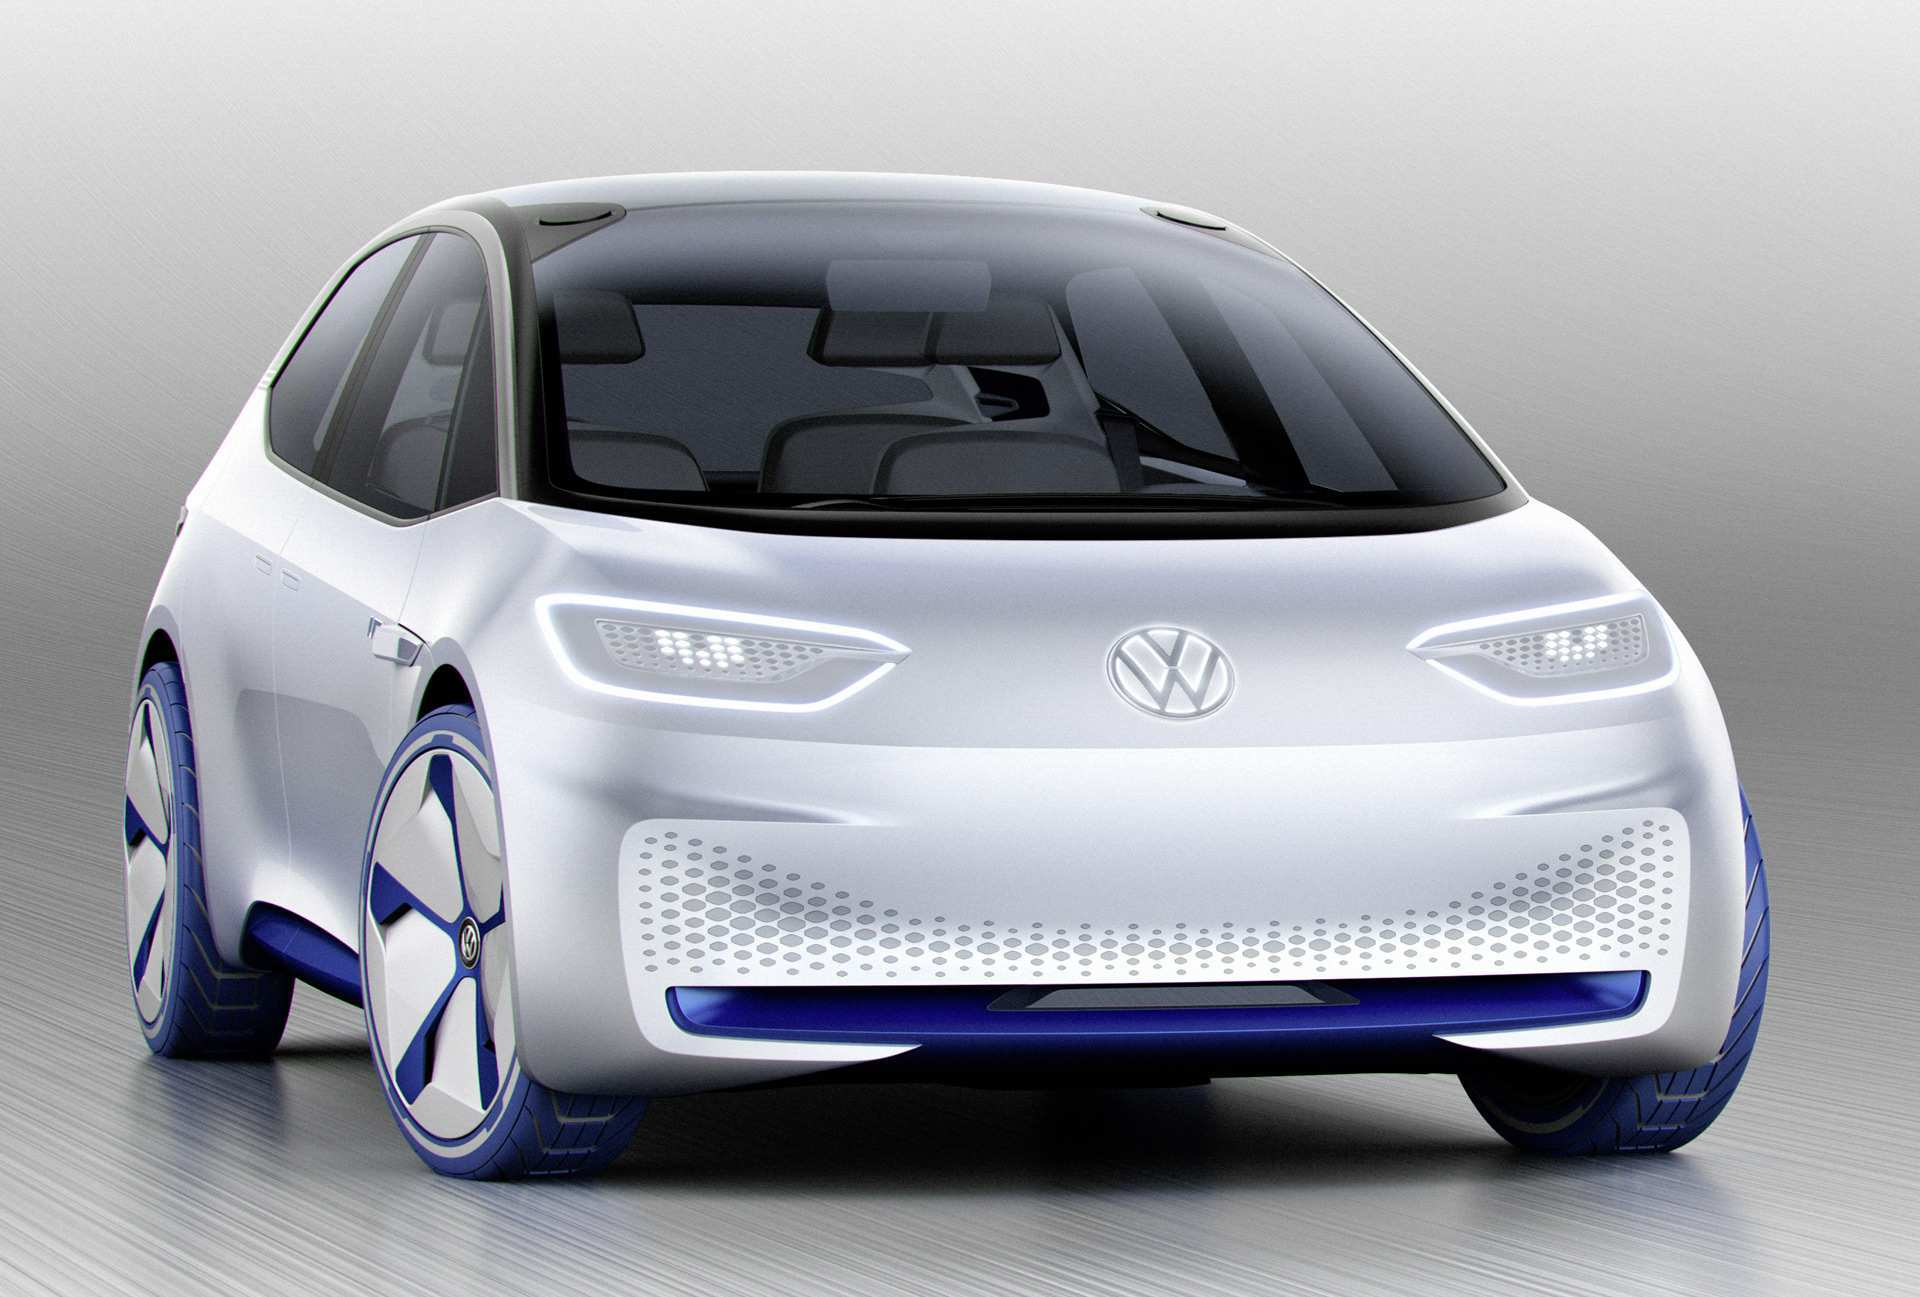 83 New Volkswagen Electric Car 2020 Specs And Review